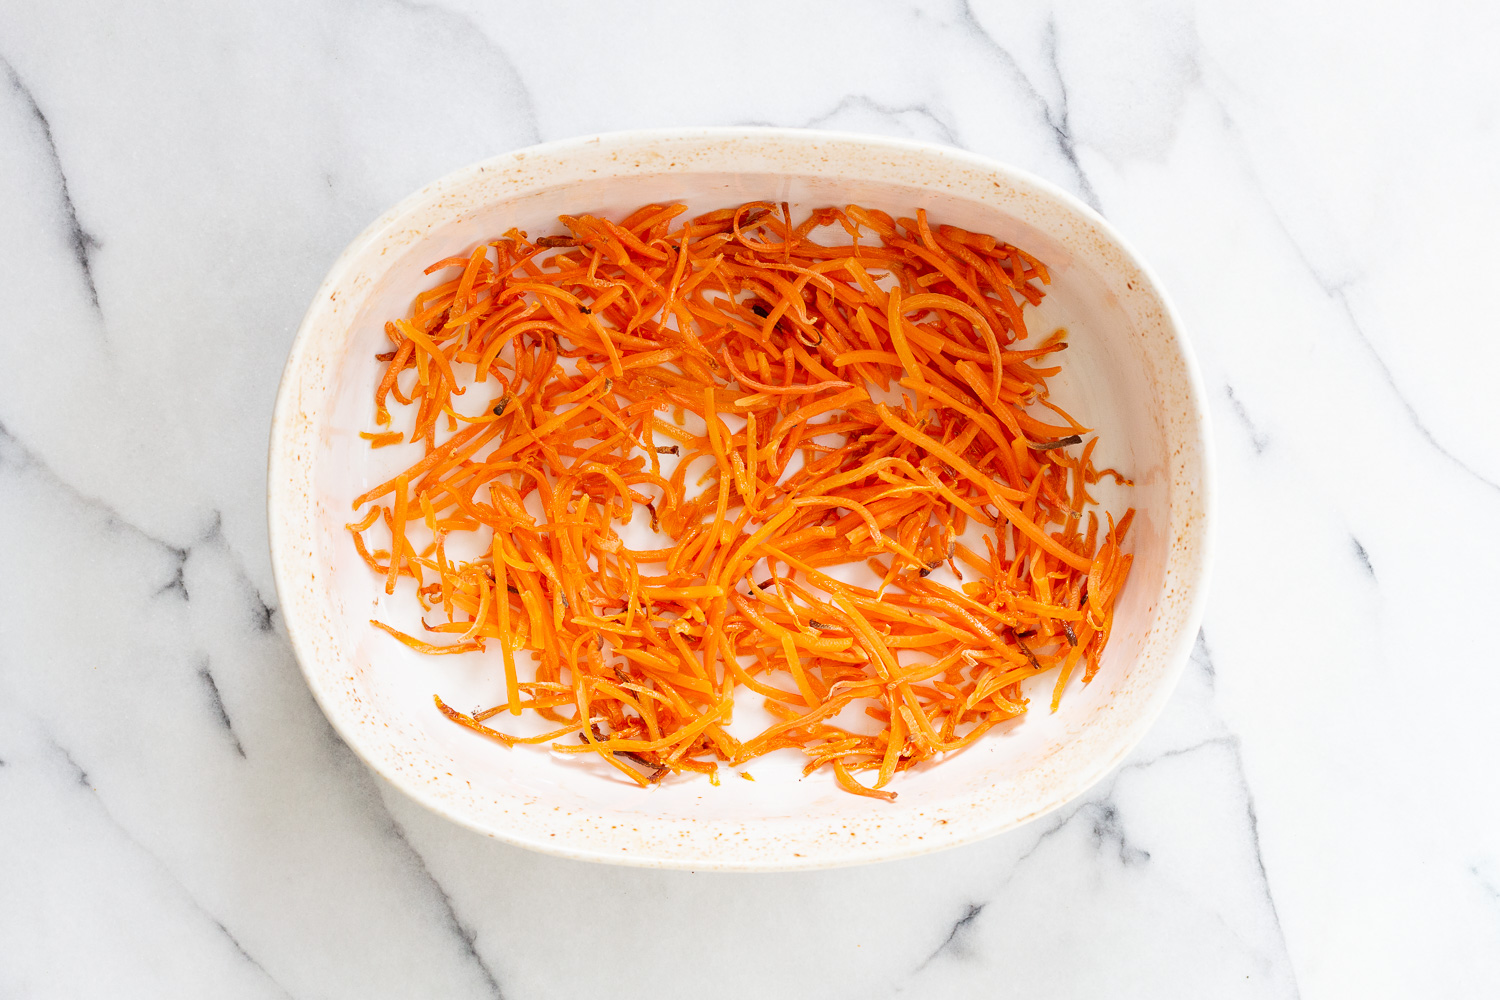 Roasted Carrots for our Vegan Carrot Cake Baked Oatmeal in a white baking dish